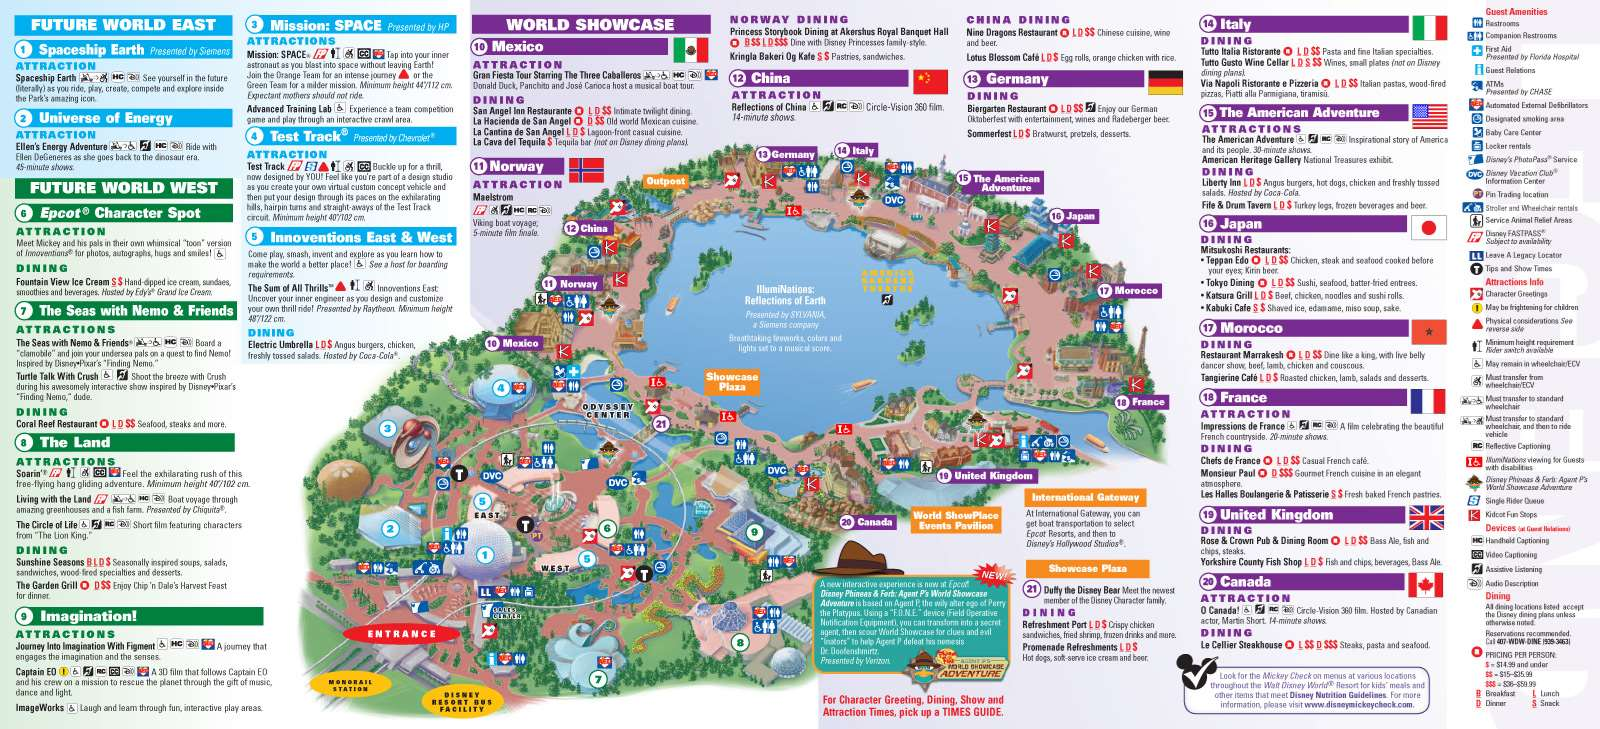 New Park Maps Released Today Include My Disney Experience - Florida map orlando area